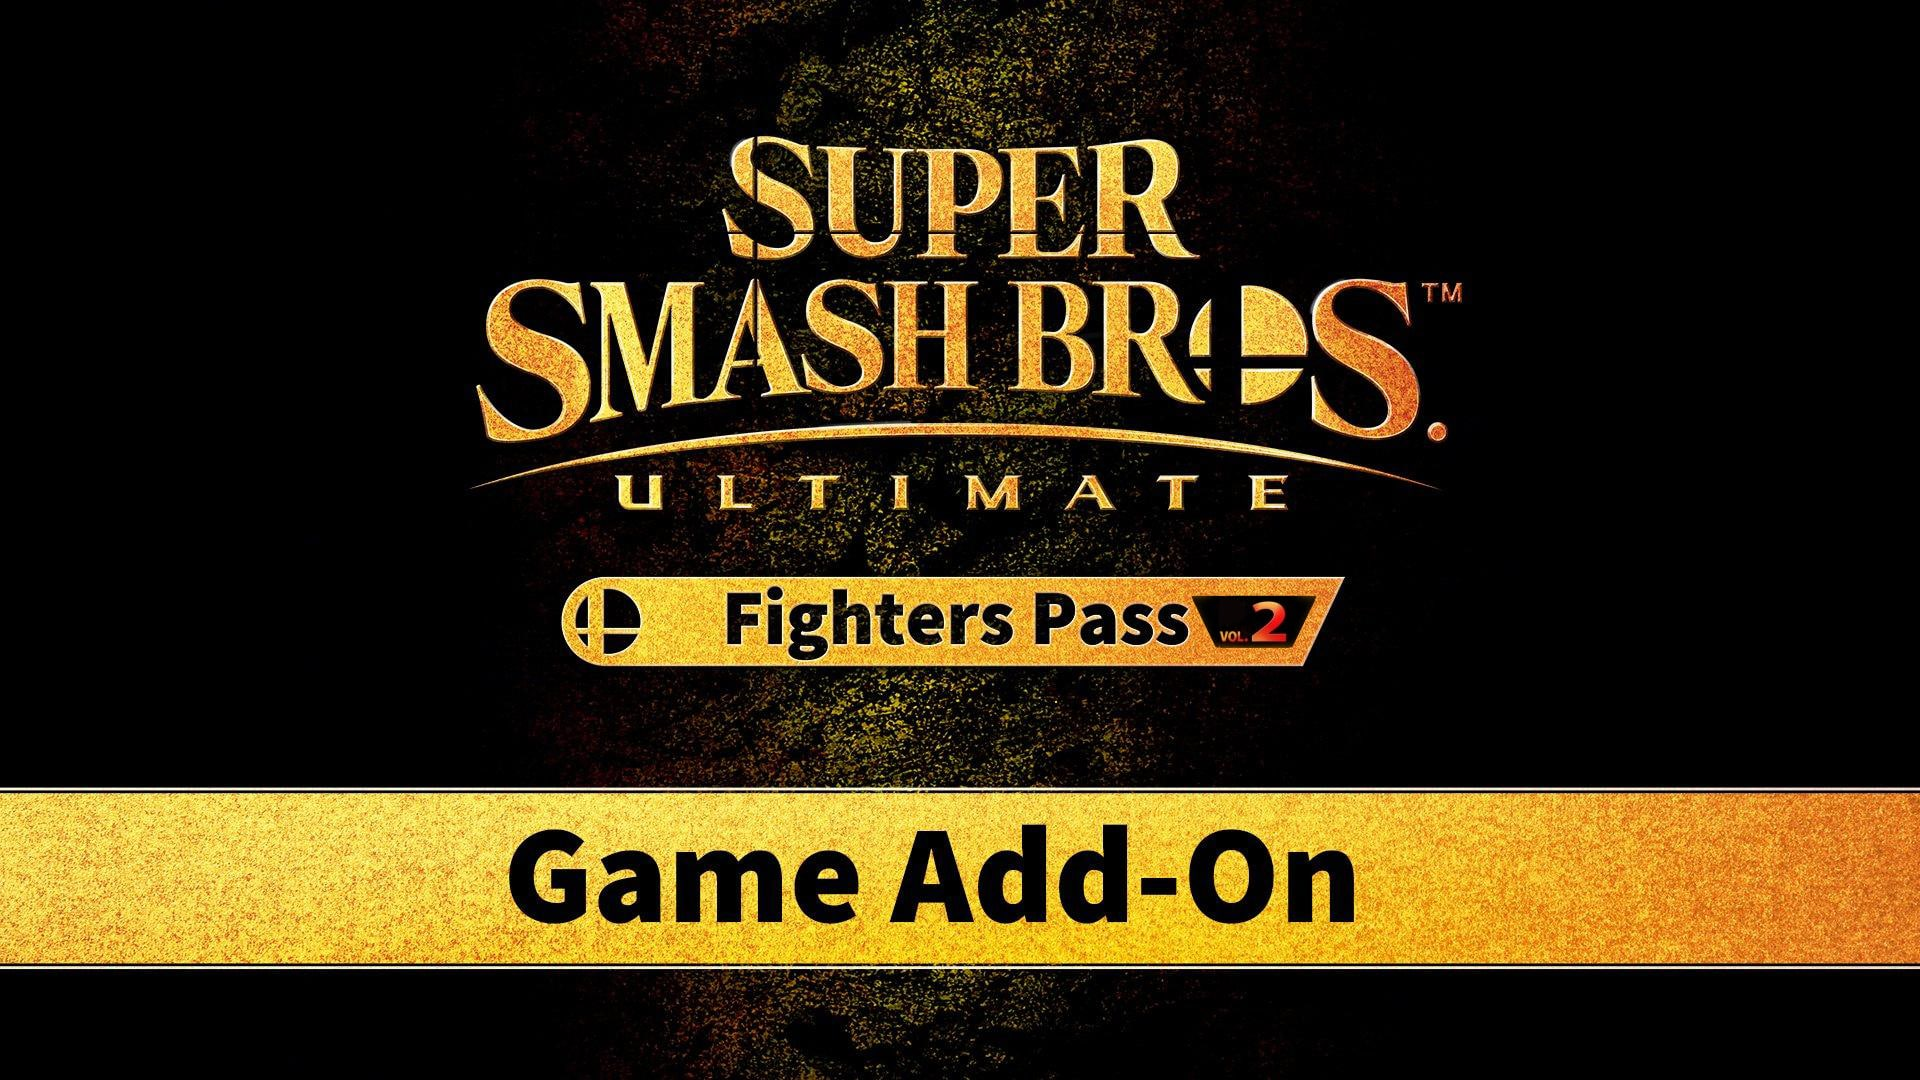 super-smash-bros-ultimate-fighters-pass-